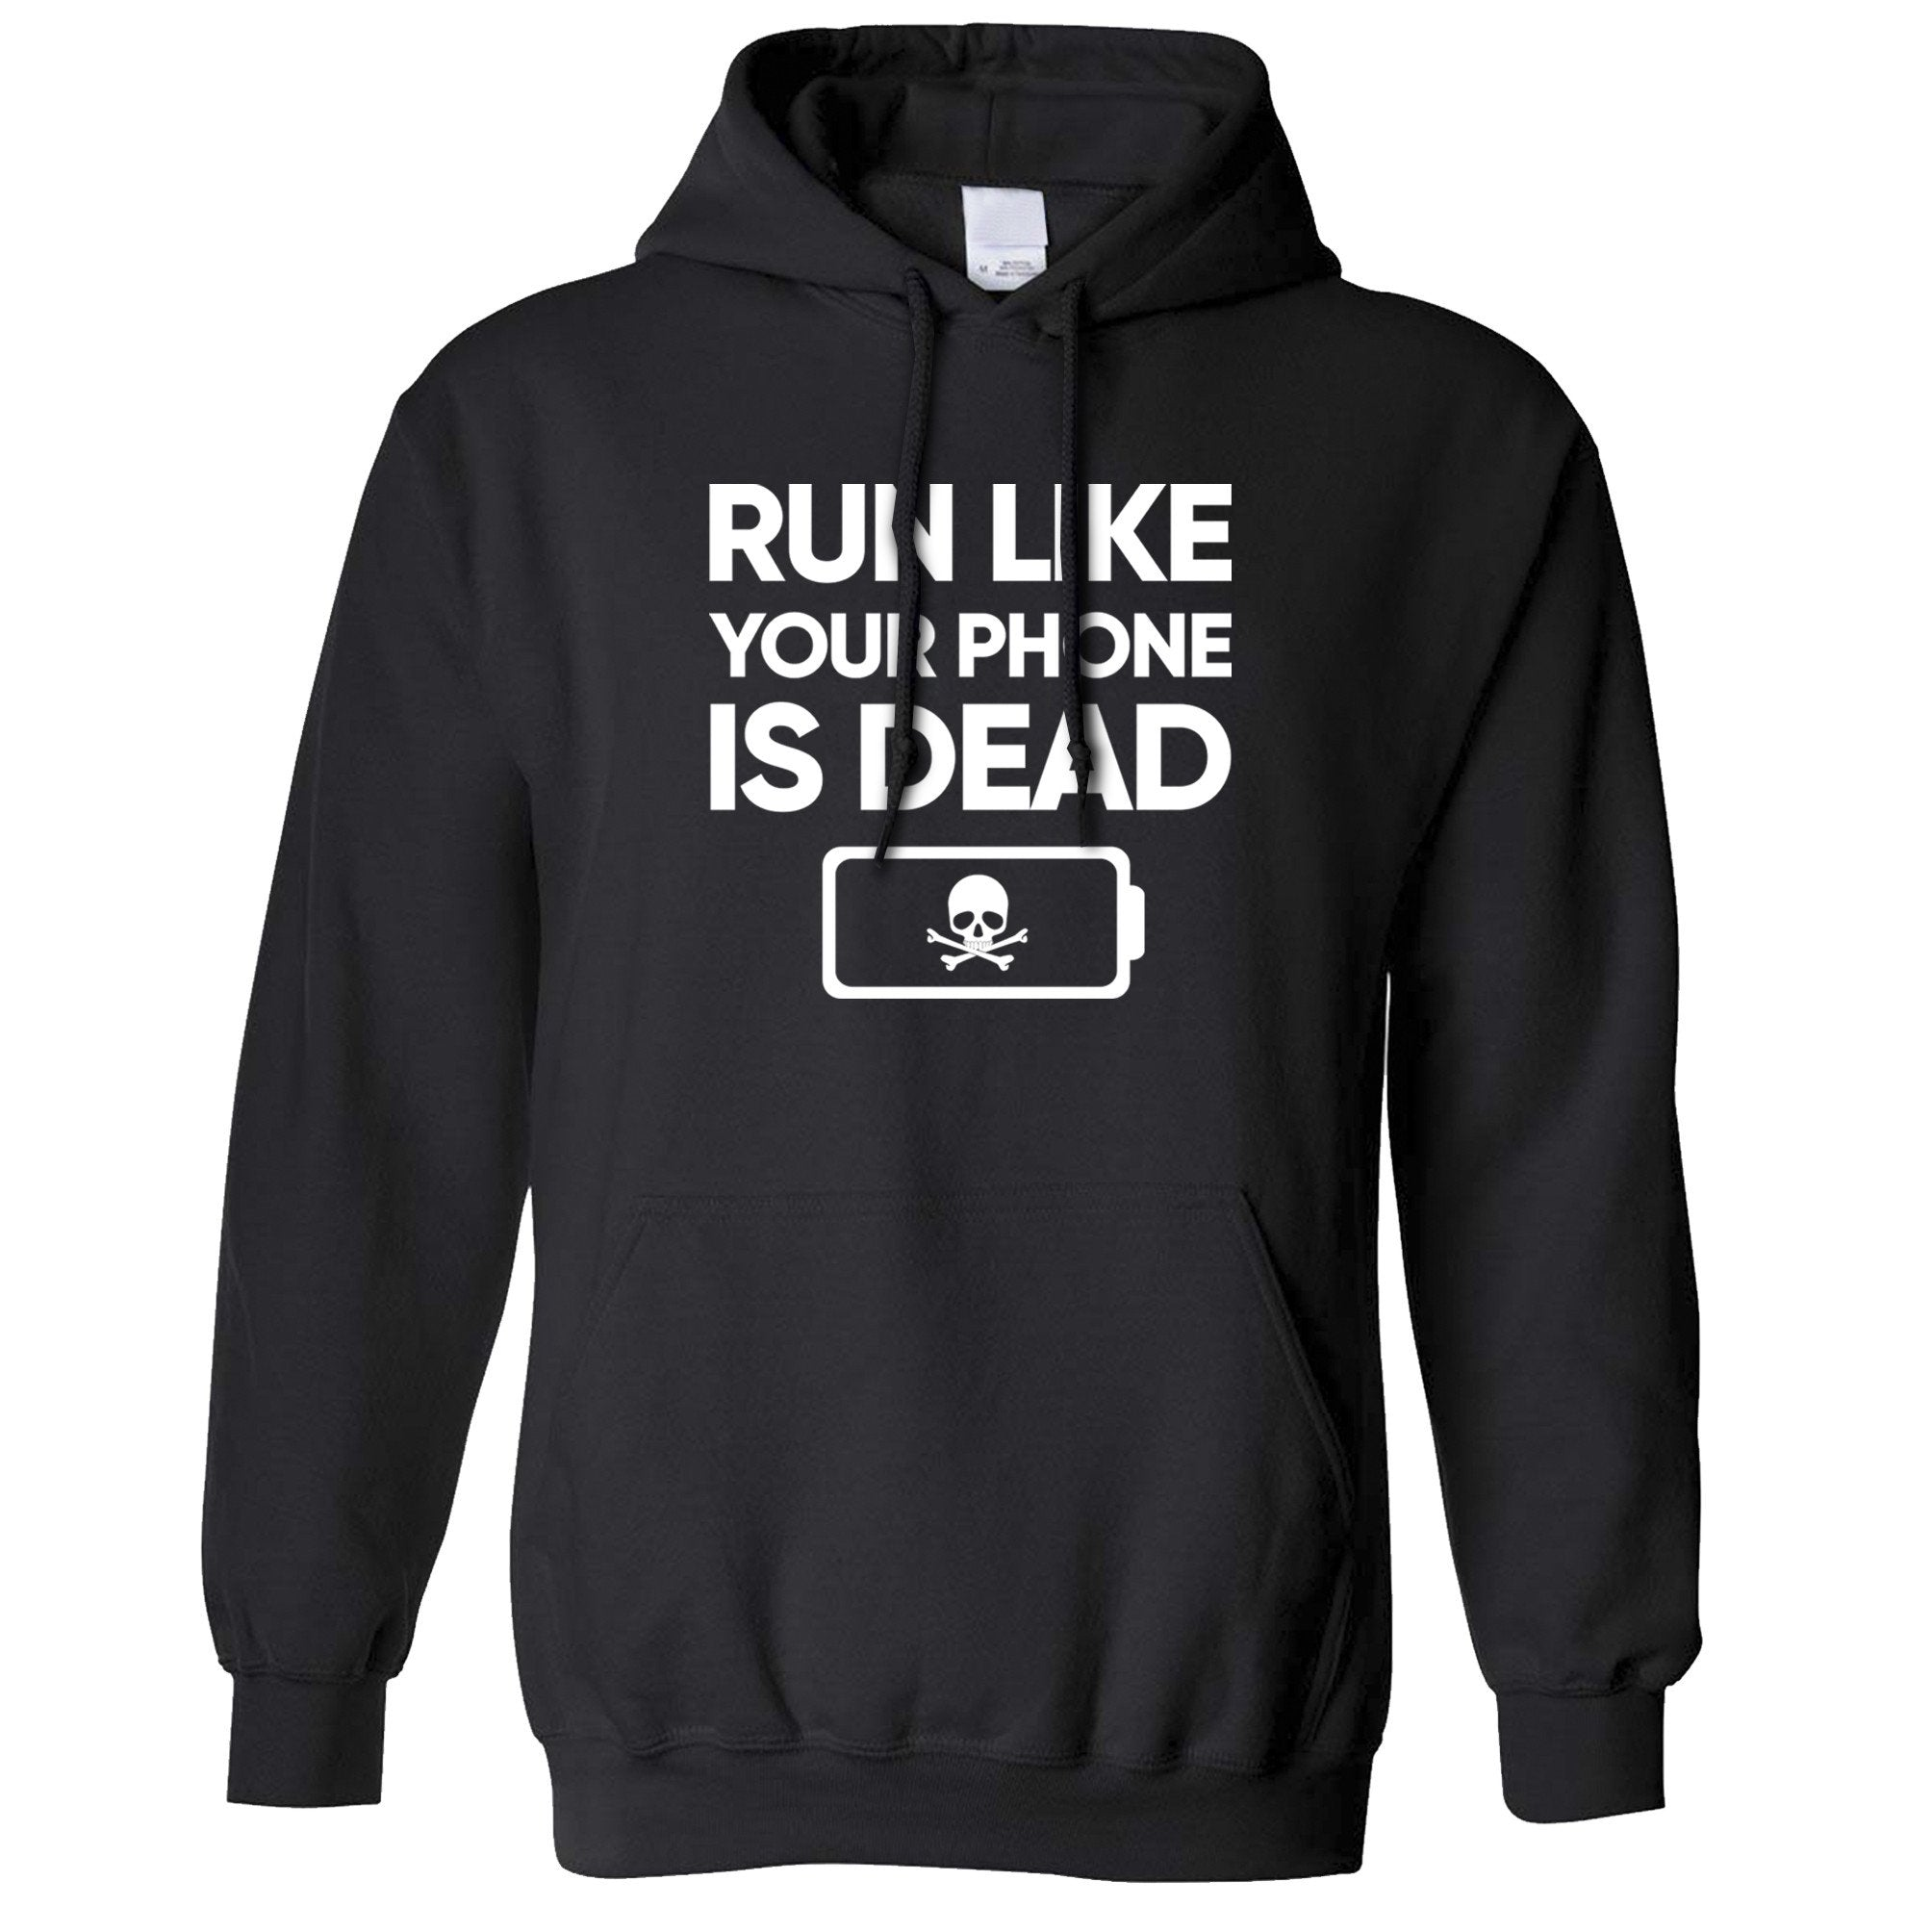 Novelty Hoodie Run Like Your Phone Is Dead Joke Hooded Jumper